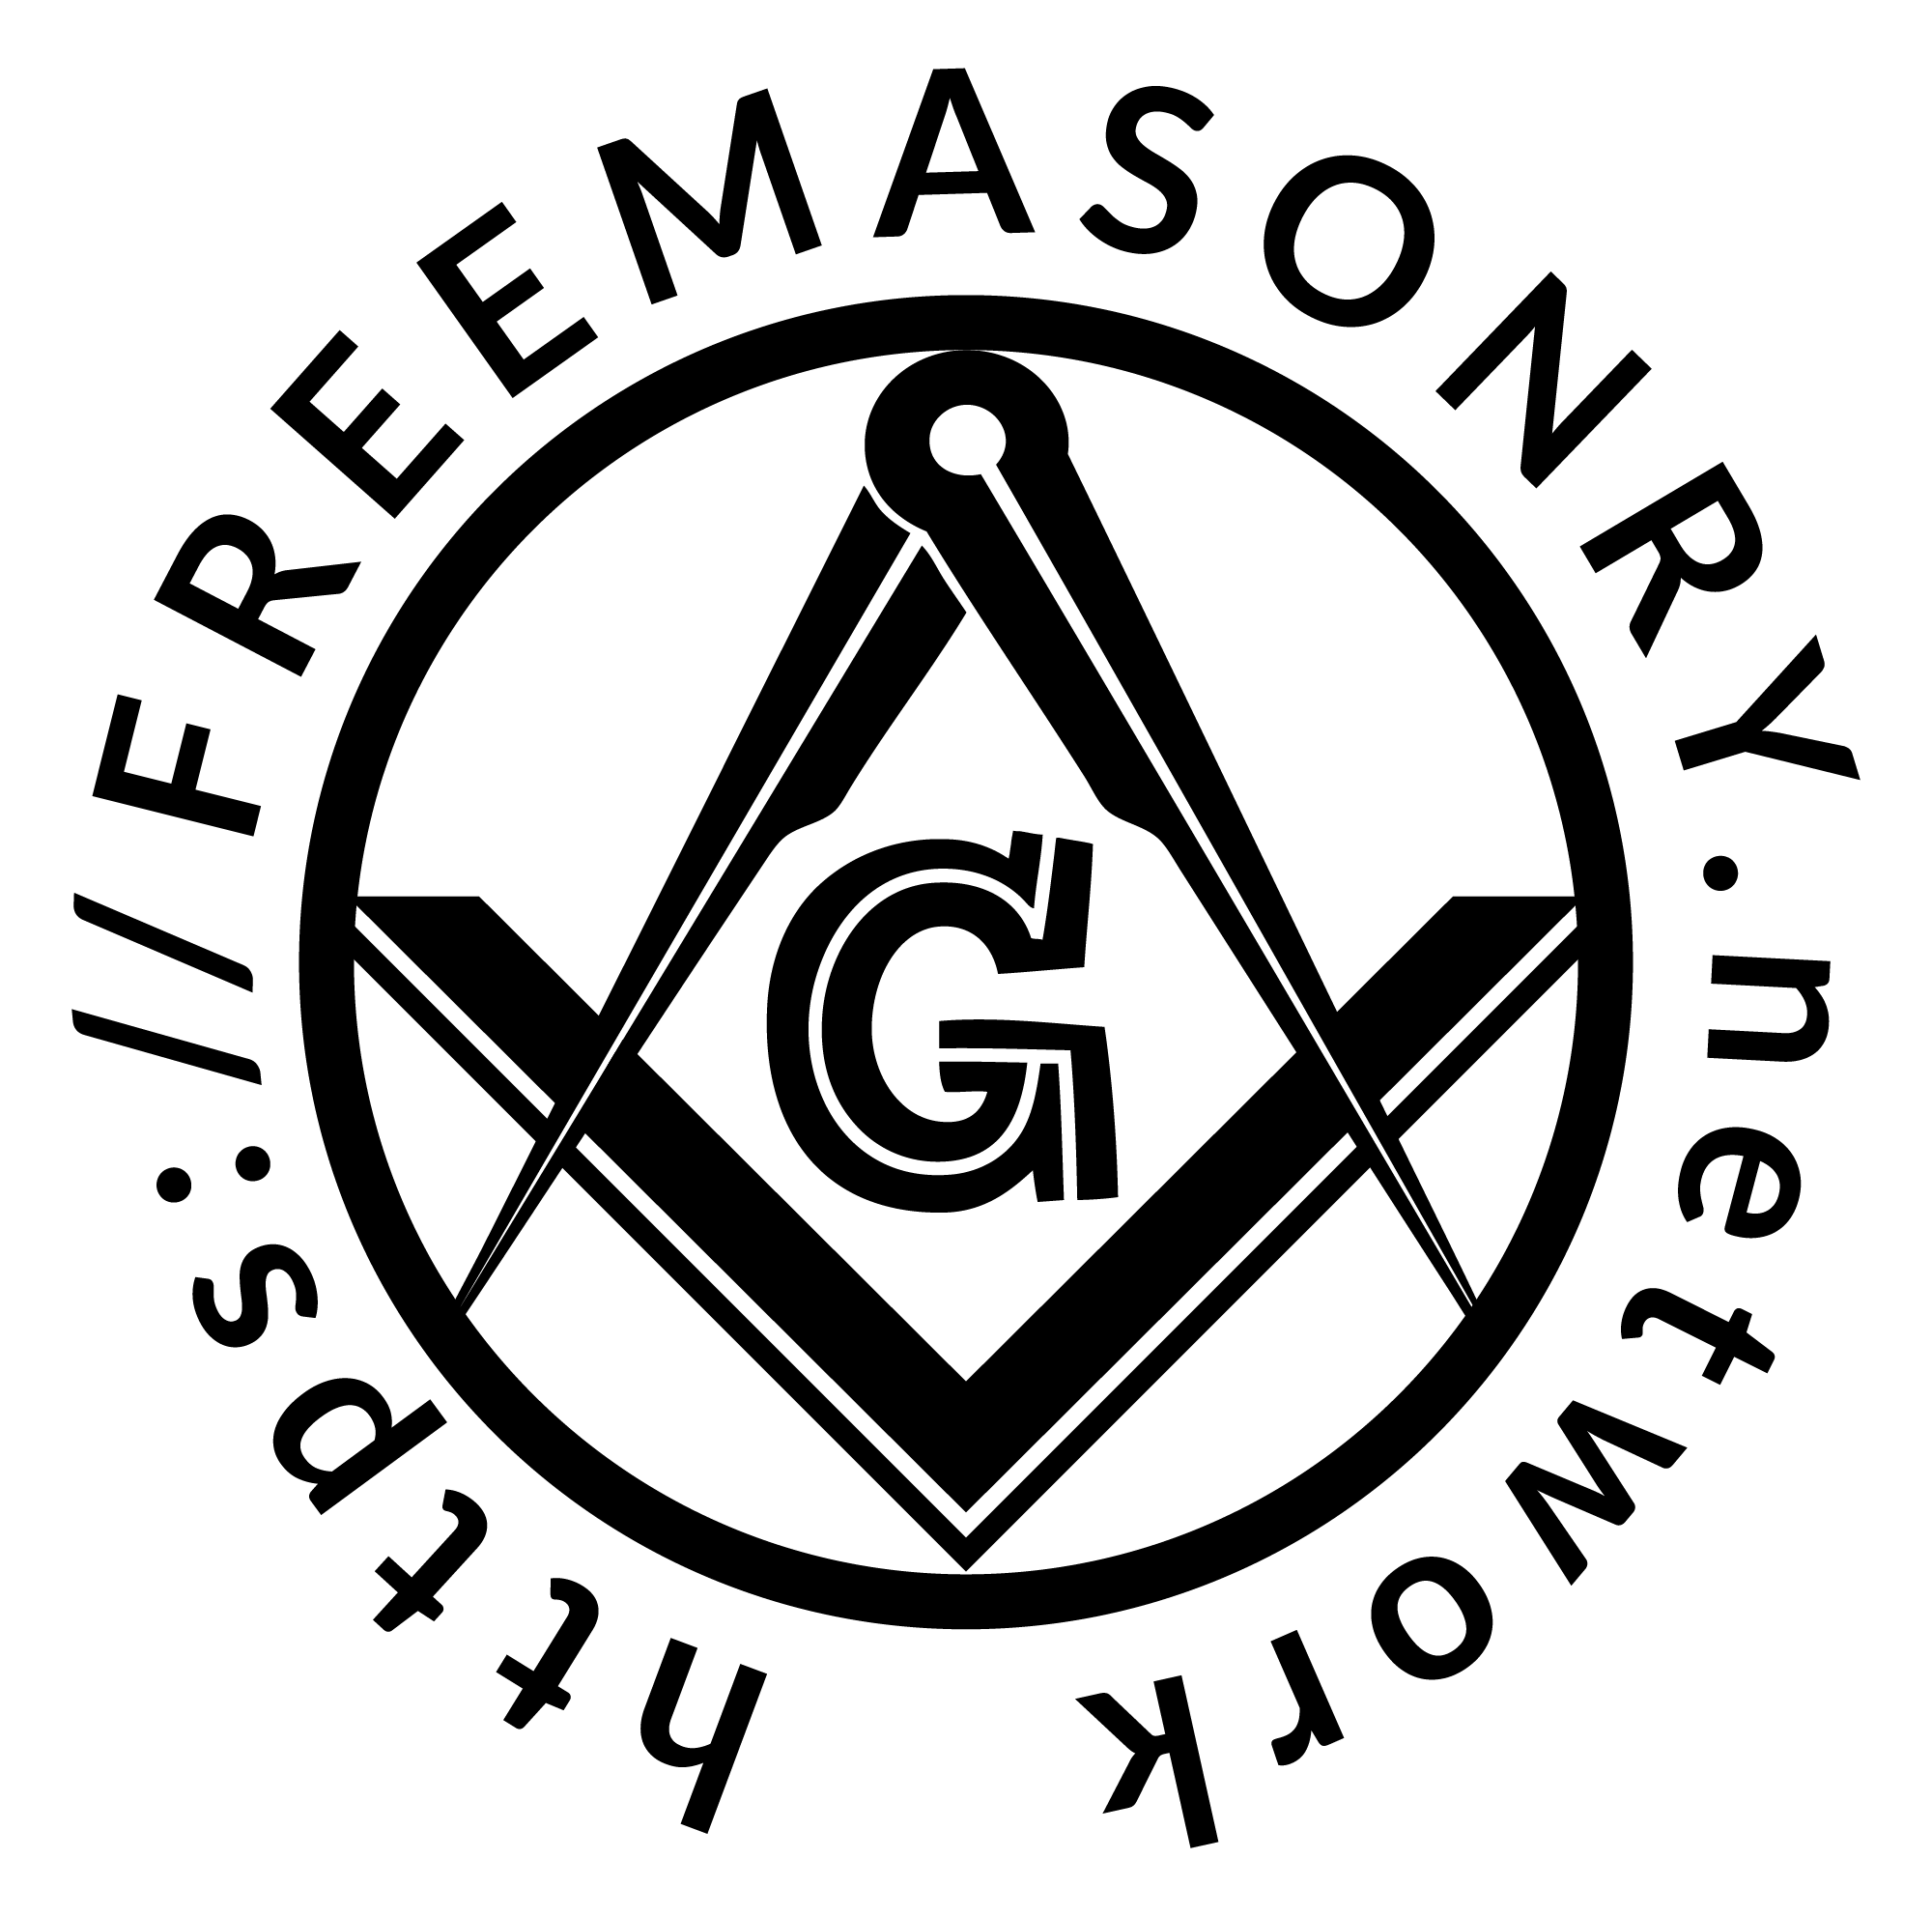 LIBERAL FREEMASONRY IN THE USA